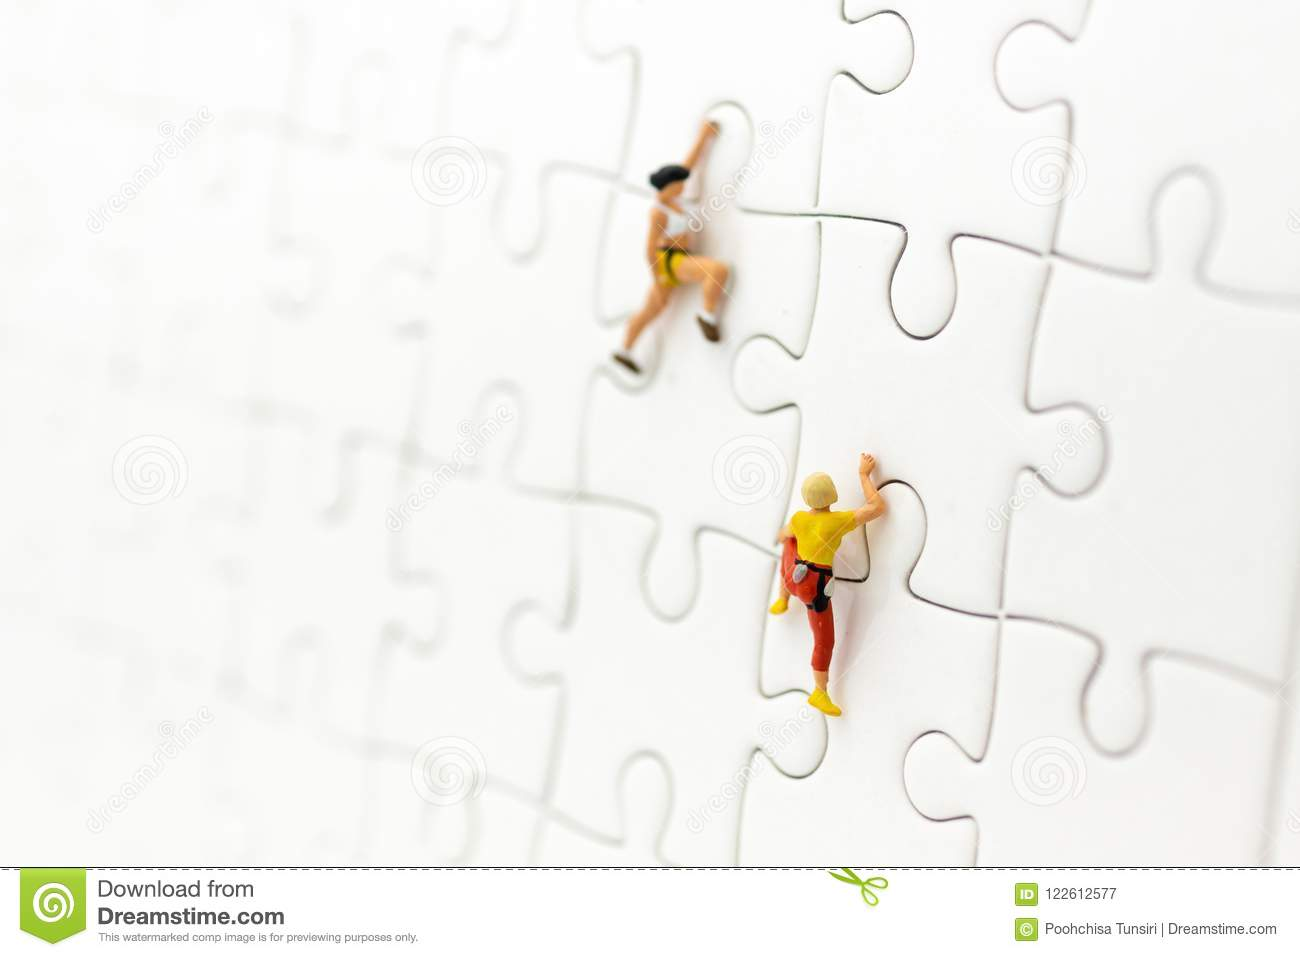 Miniature people : Traveler, climber on jigsaw board. Image use for to solve problems, finding solution and think new idea concept